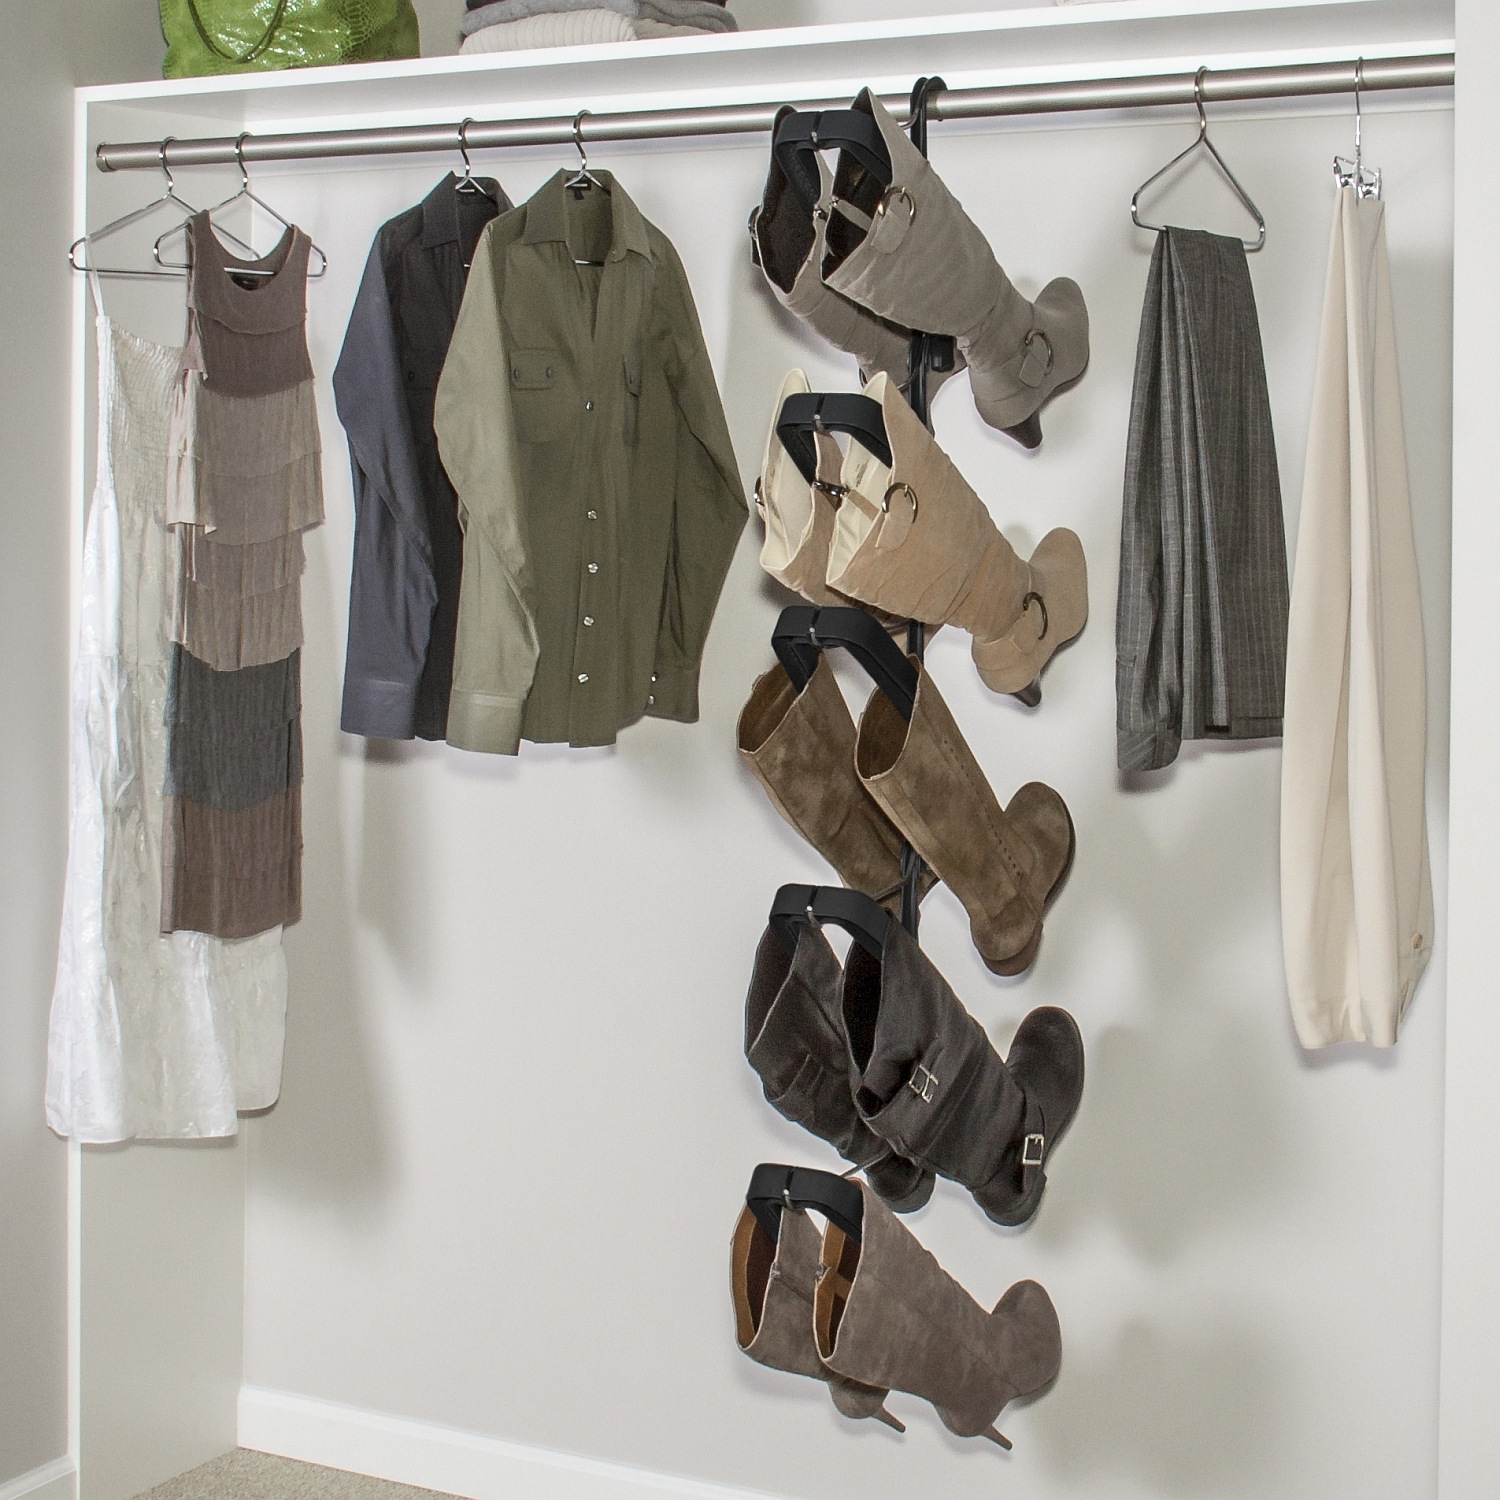 shelves of cave closet d wardrobe wood walk solutions brown organizers inserts clothes ideas shelving with full way plan small size wire systems best design organize layout organizer in ikea to target